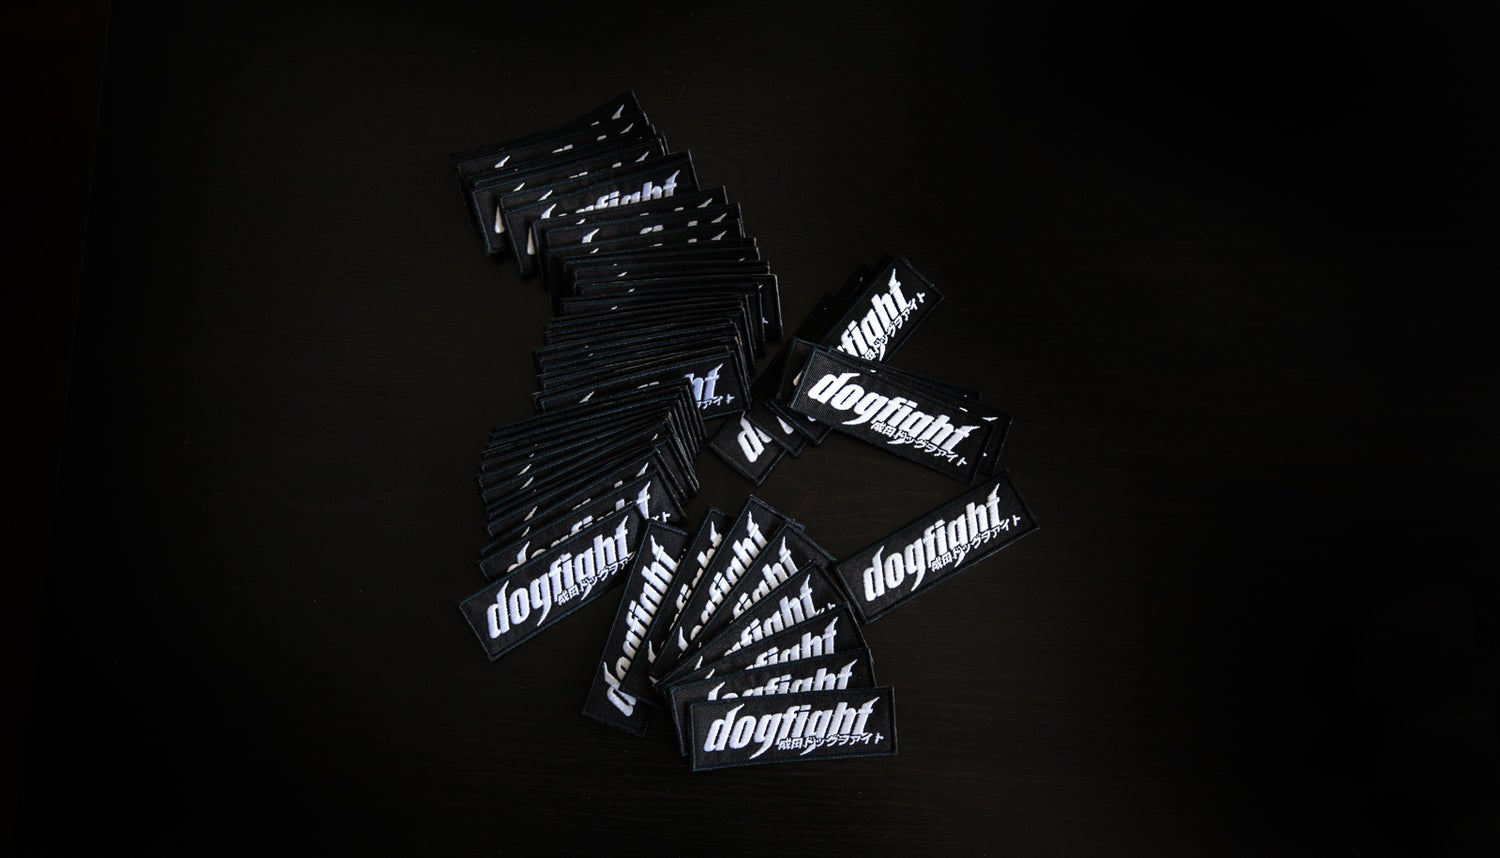 Image of Dogfight LCP Embroidered Patch